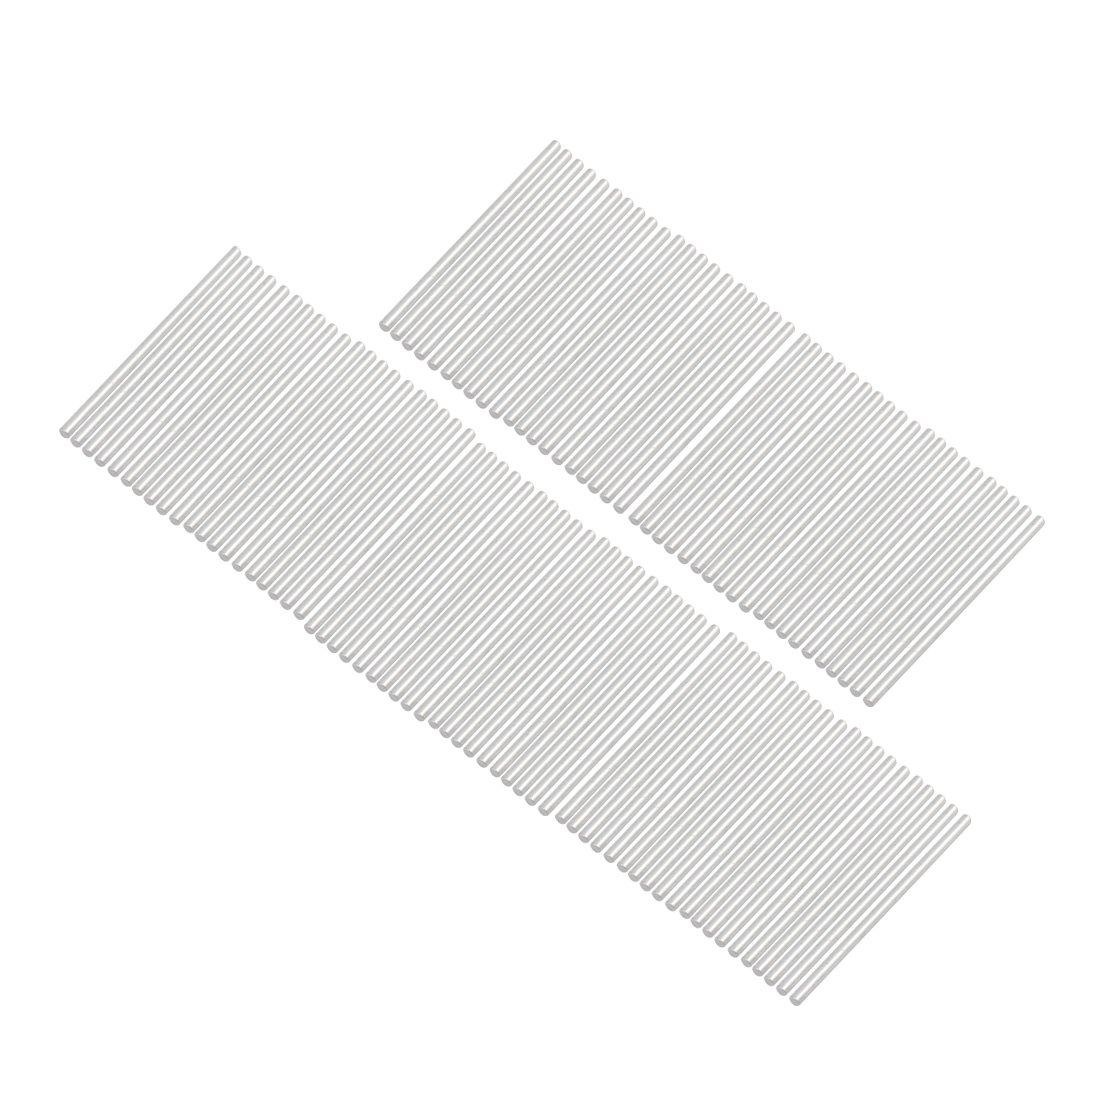 uxcell 100pcs Round Shaft Solid Steel Rods Axles 2.1mm x 50mm Silver Tone